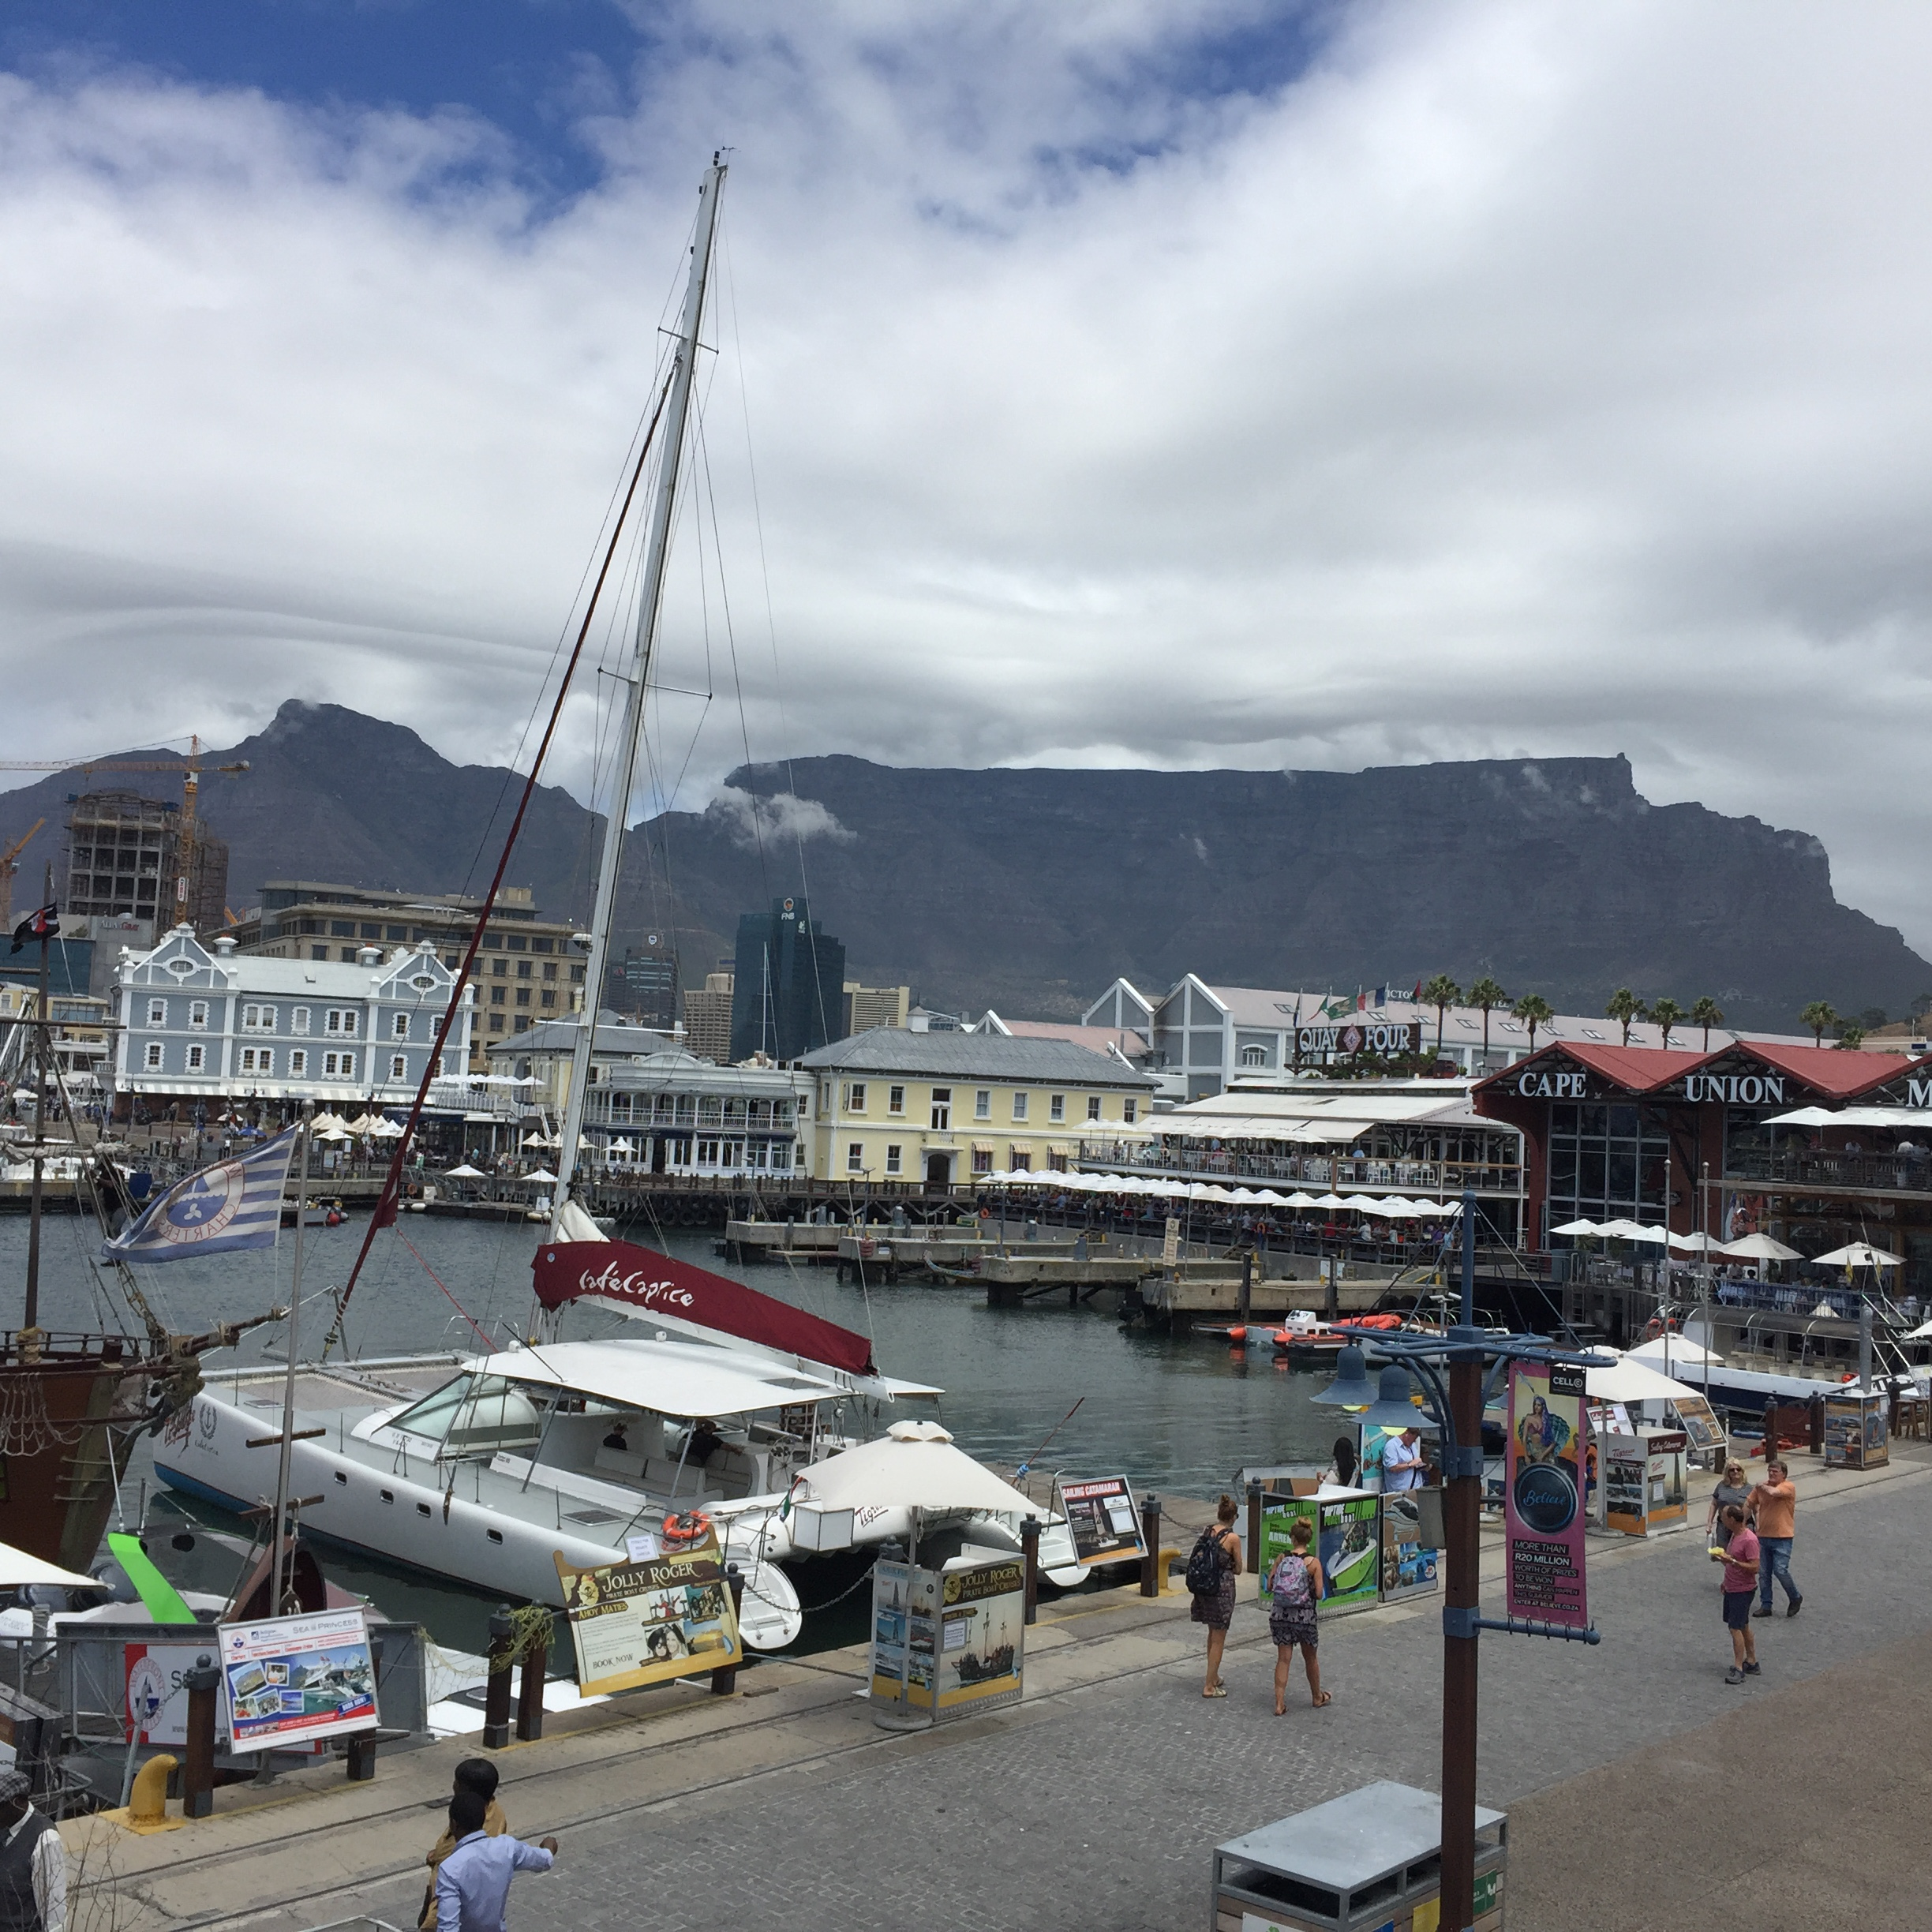 Our view at lunch. V&A Waterfront and Table Mountain